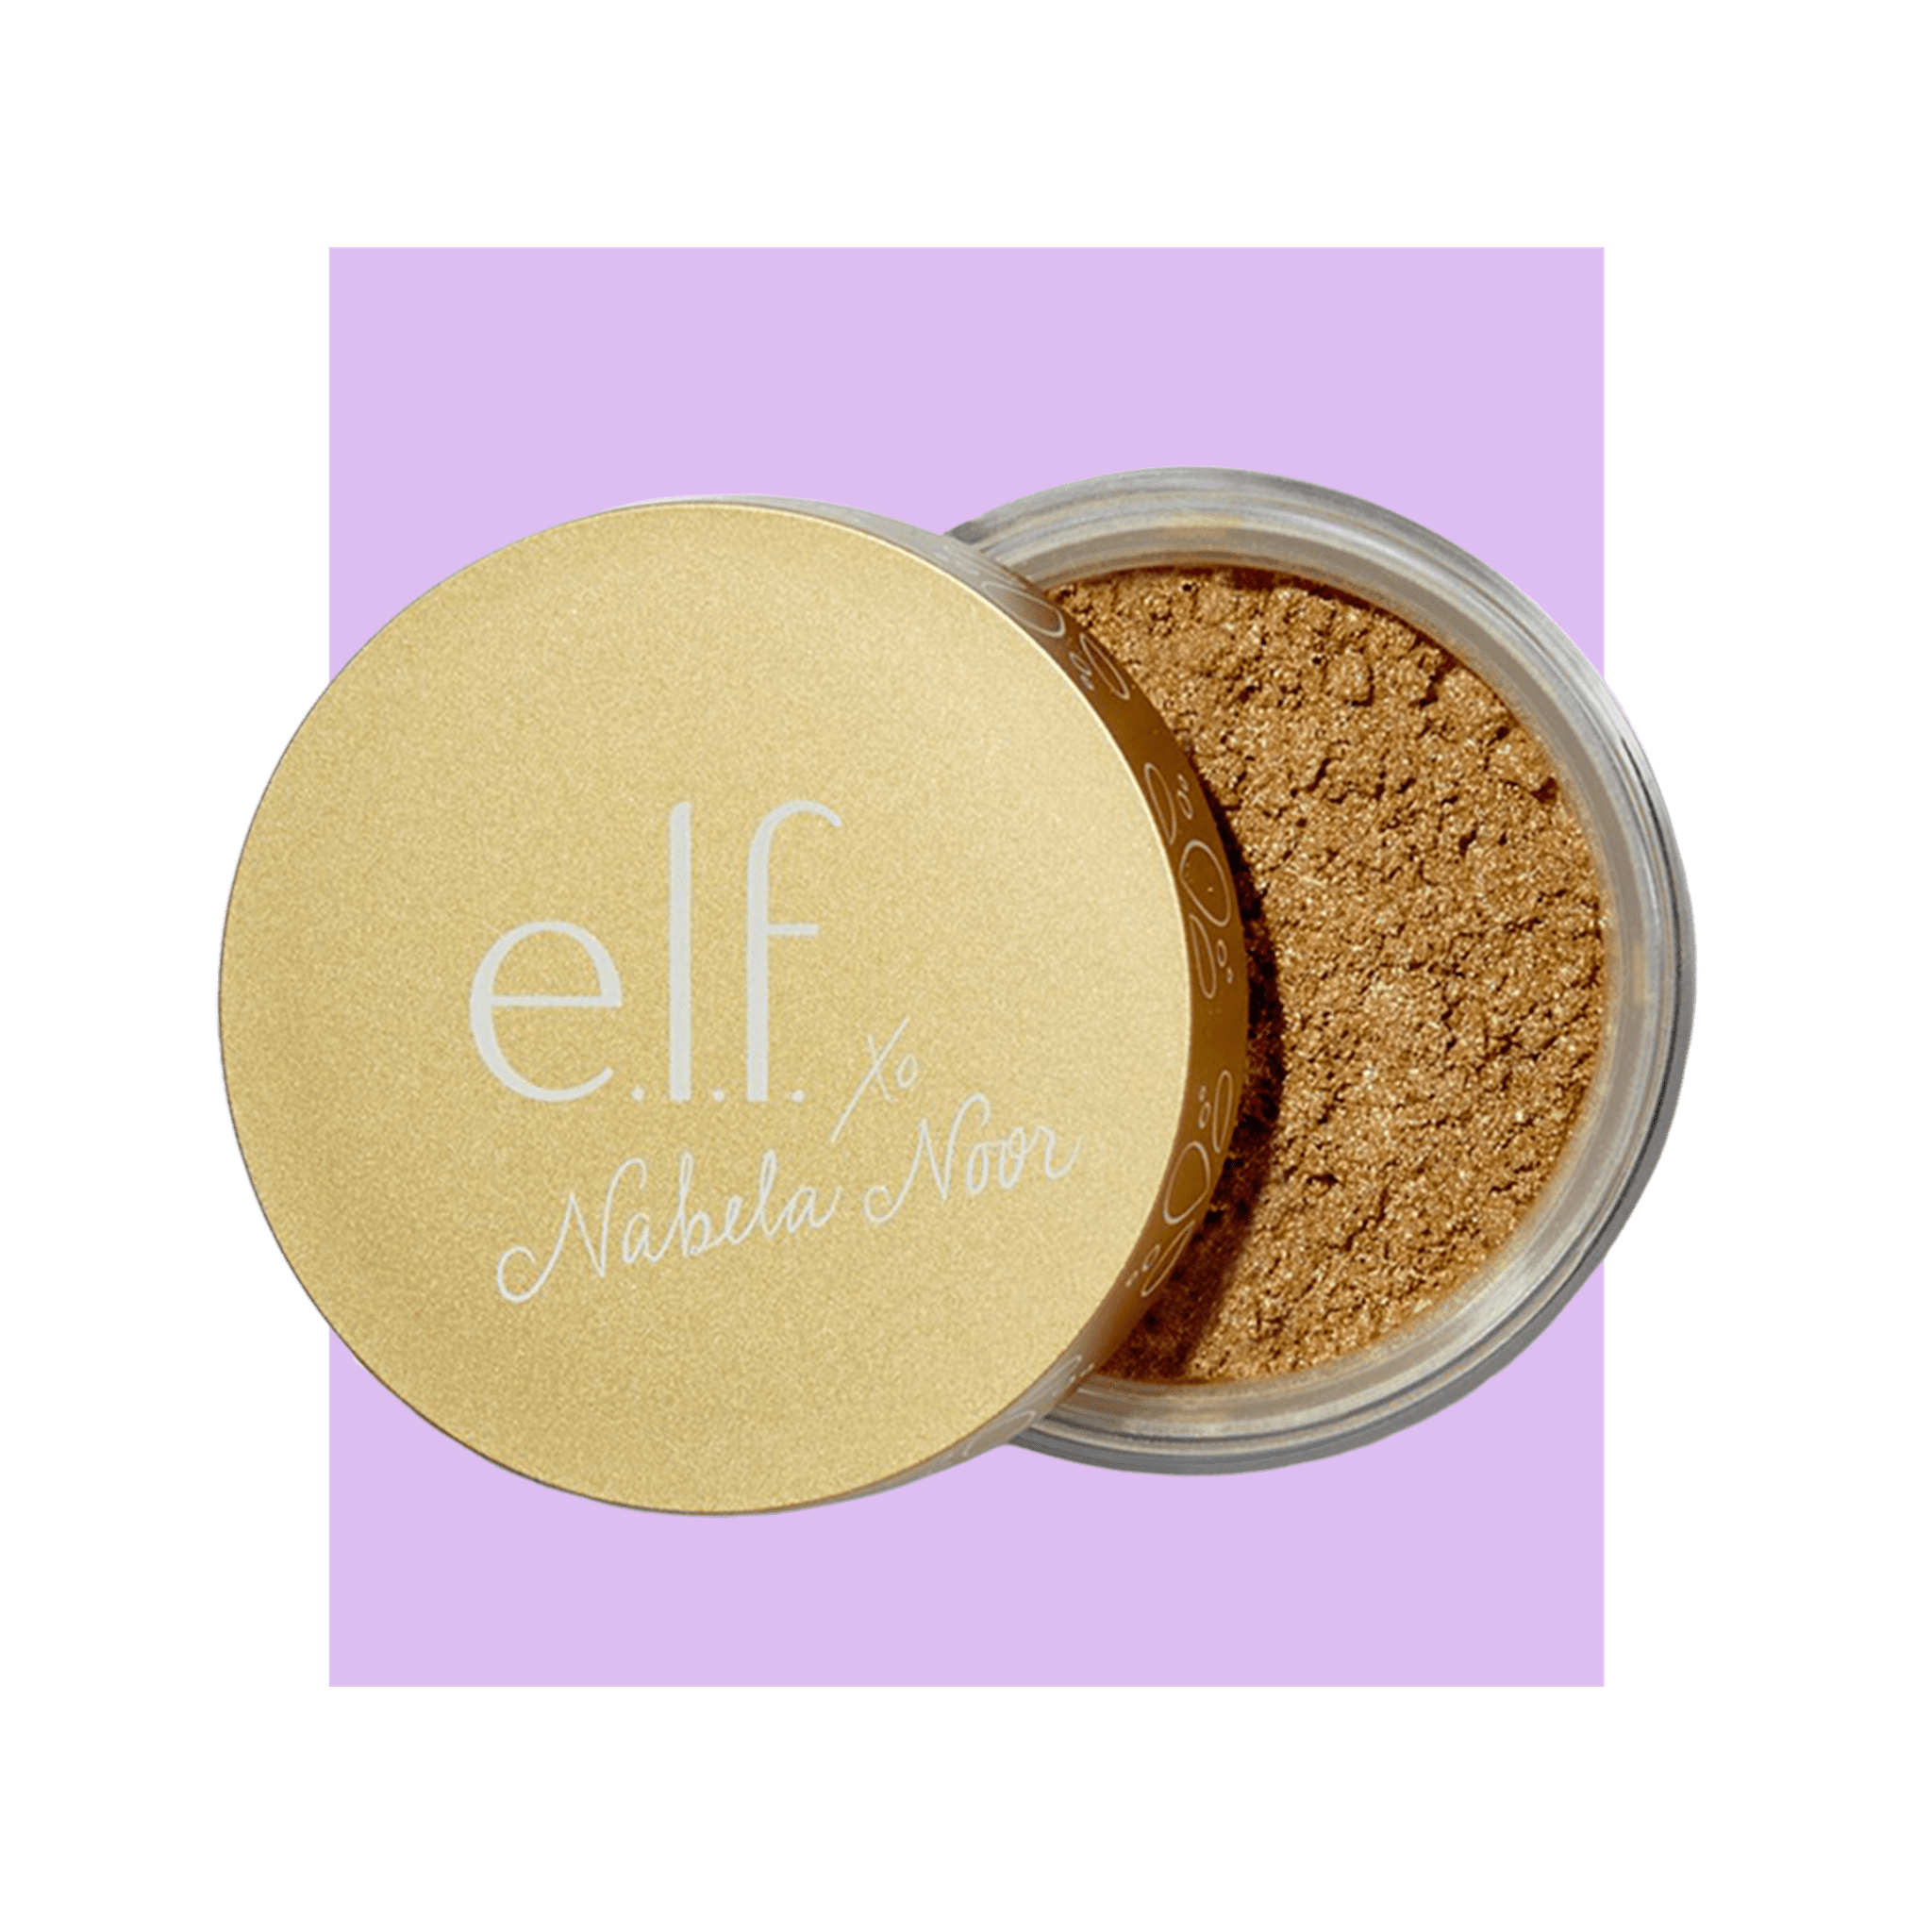 E.l.f. Cosmetics xo Nabela Noor Gleaming Loose Highlighter